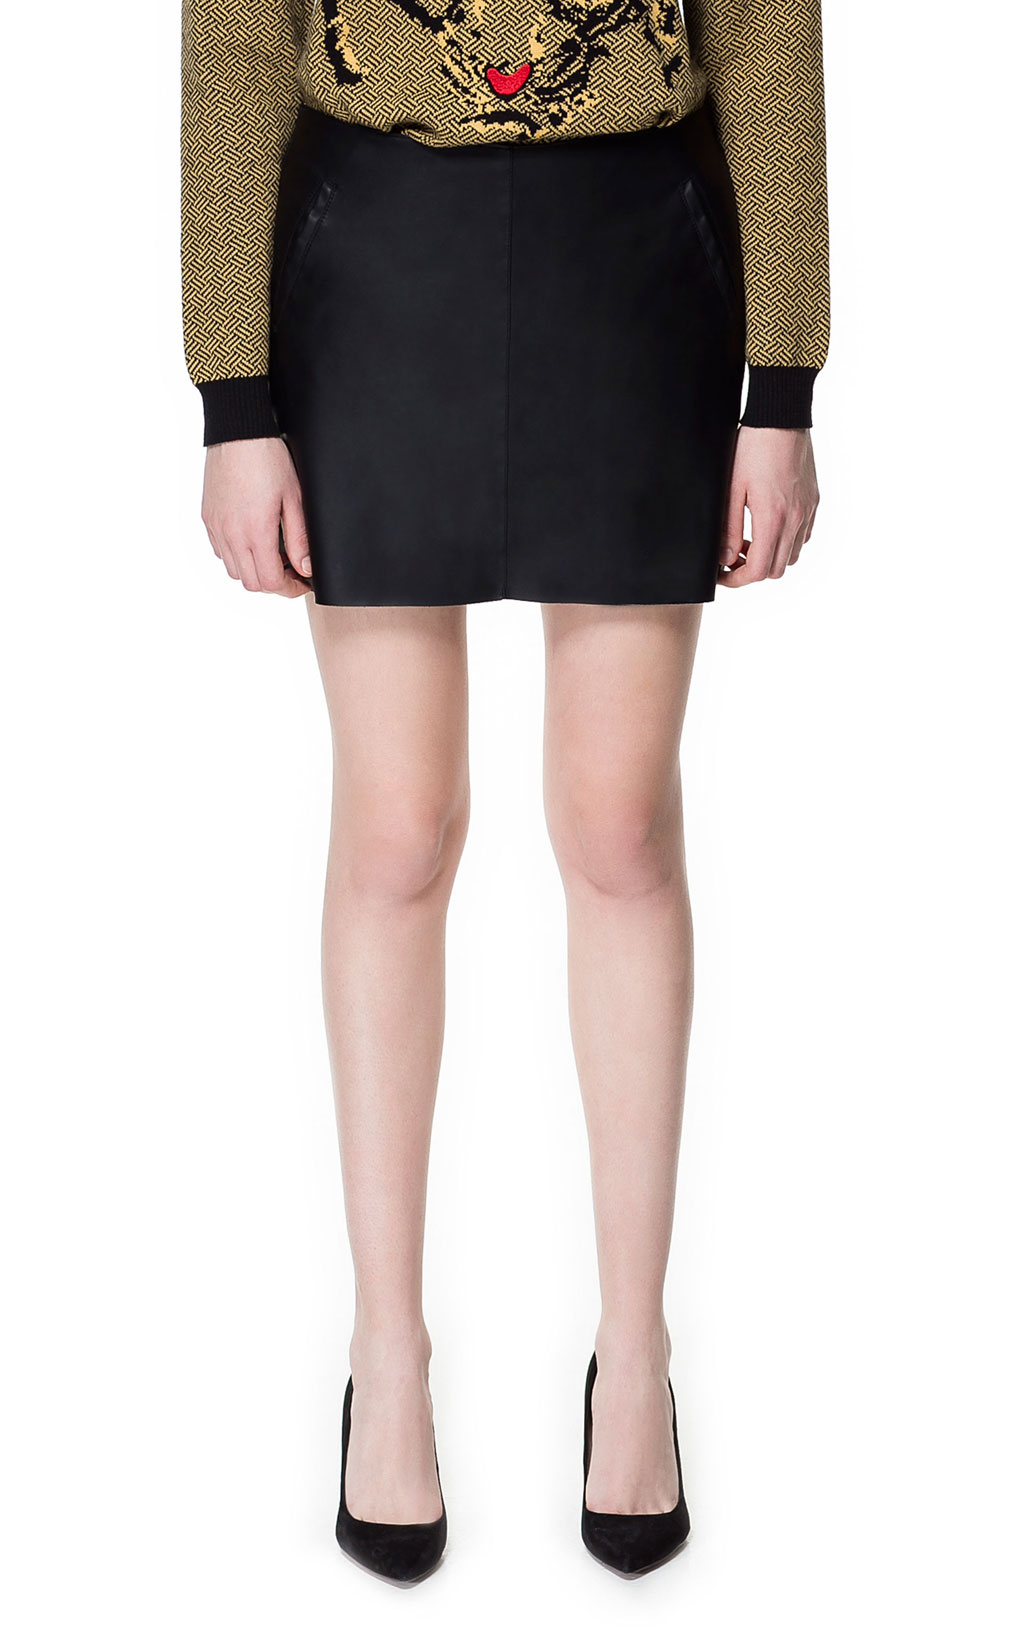 If you're looking for a serious steal, look no further than Zara's Leather Effect Mini Skirt ($30, originally $60). Show off your tan now; add your favorite tights and heels later.